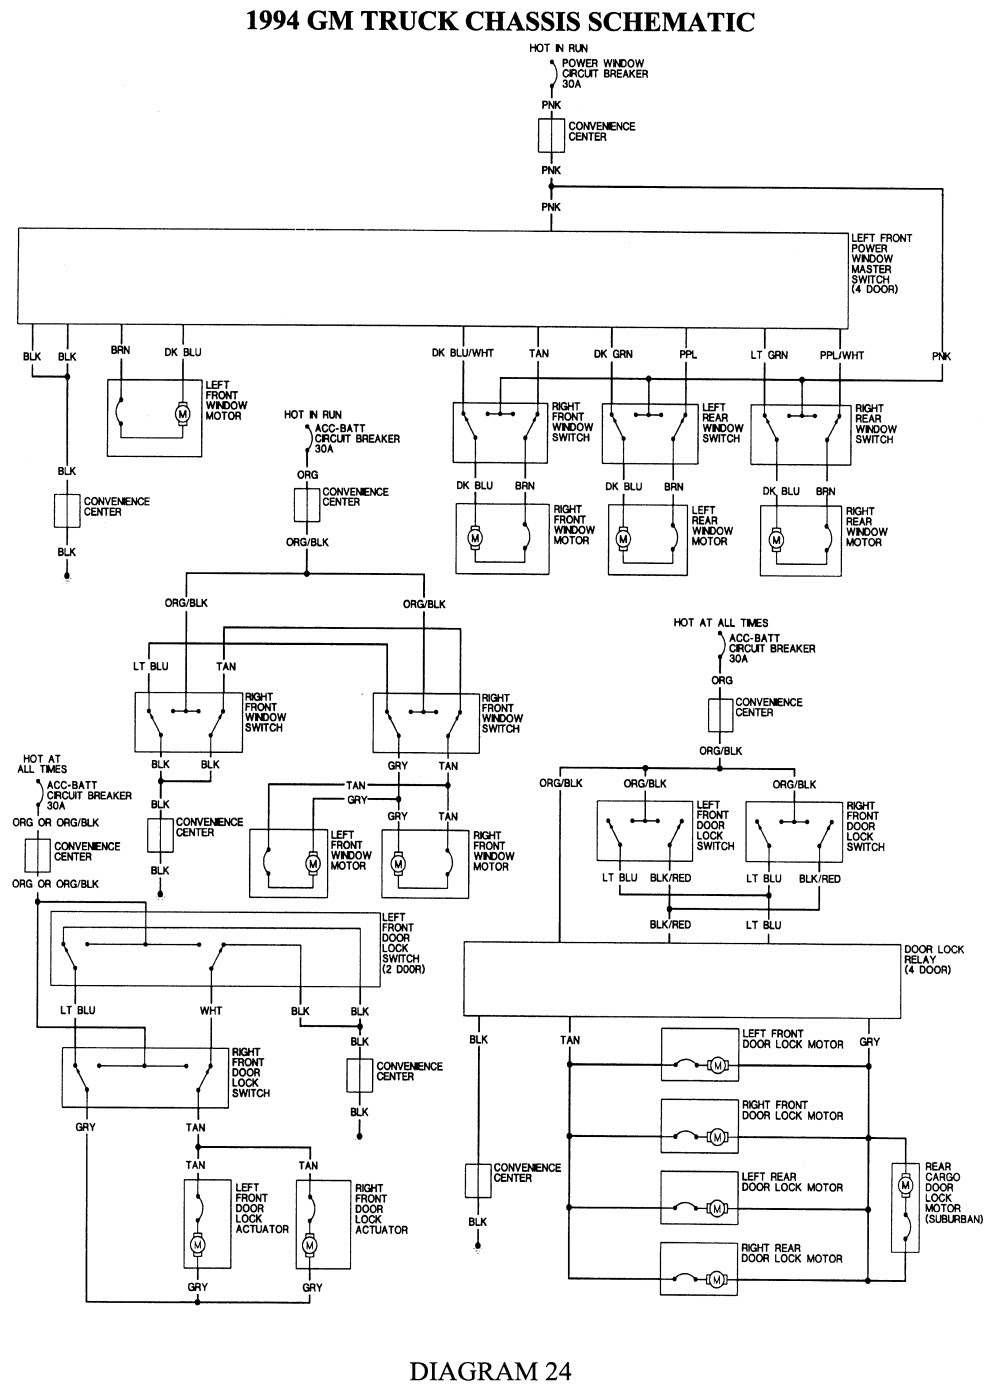 2006 Cavalier Fema Trailer Wiring Diagram Full Hd Version Wiring Diagram Circuits And Logic Diagram Chateaulesgrimard Fr